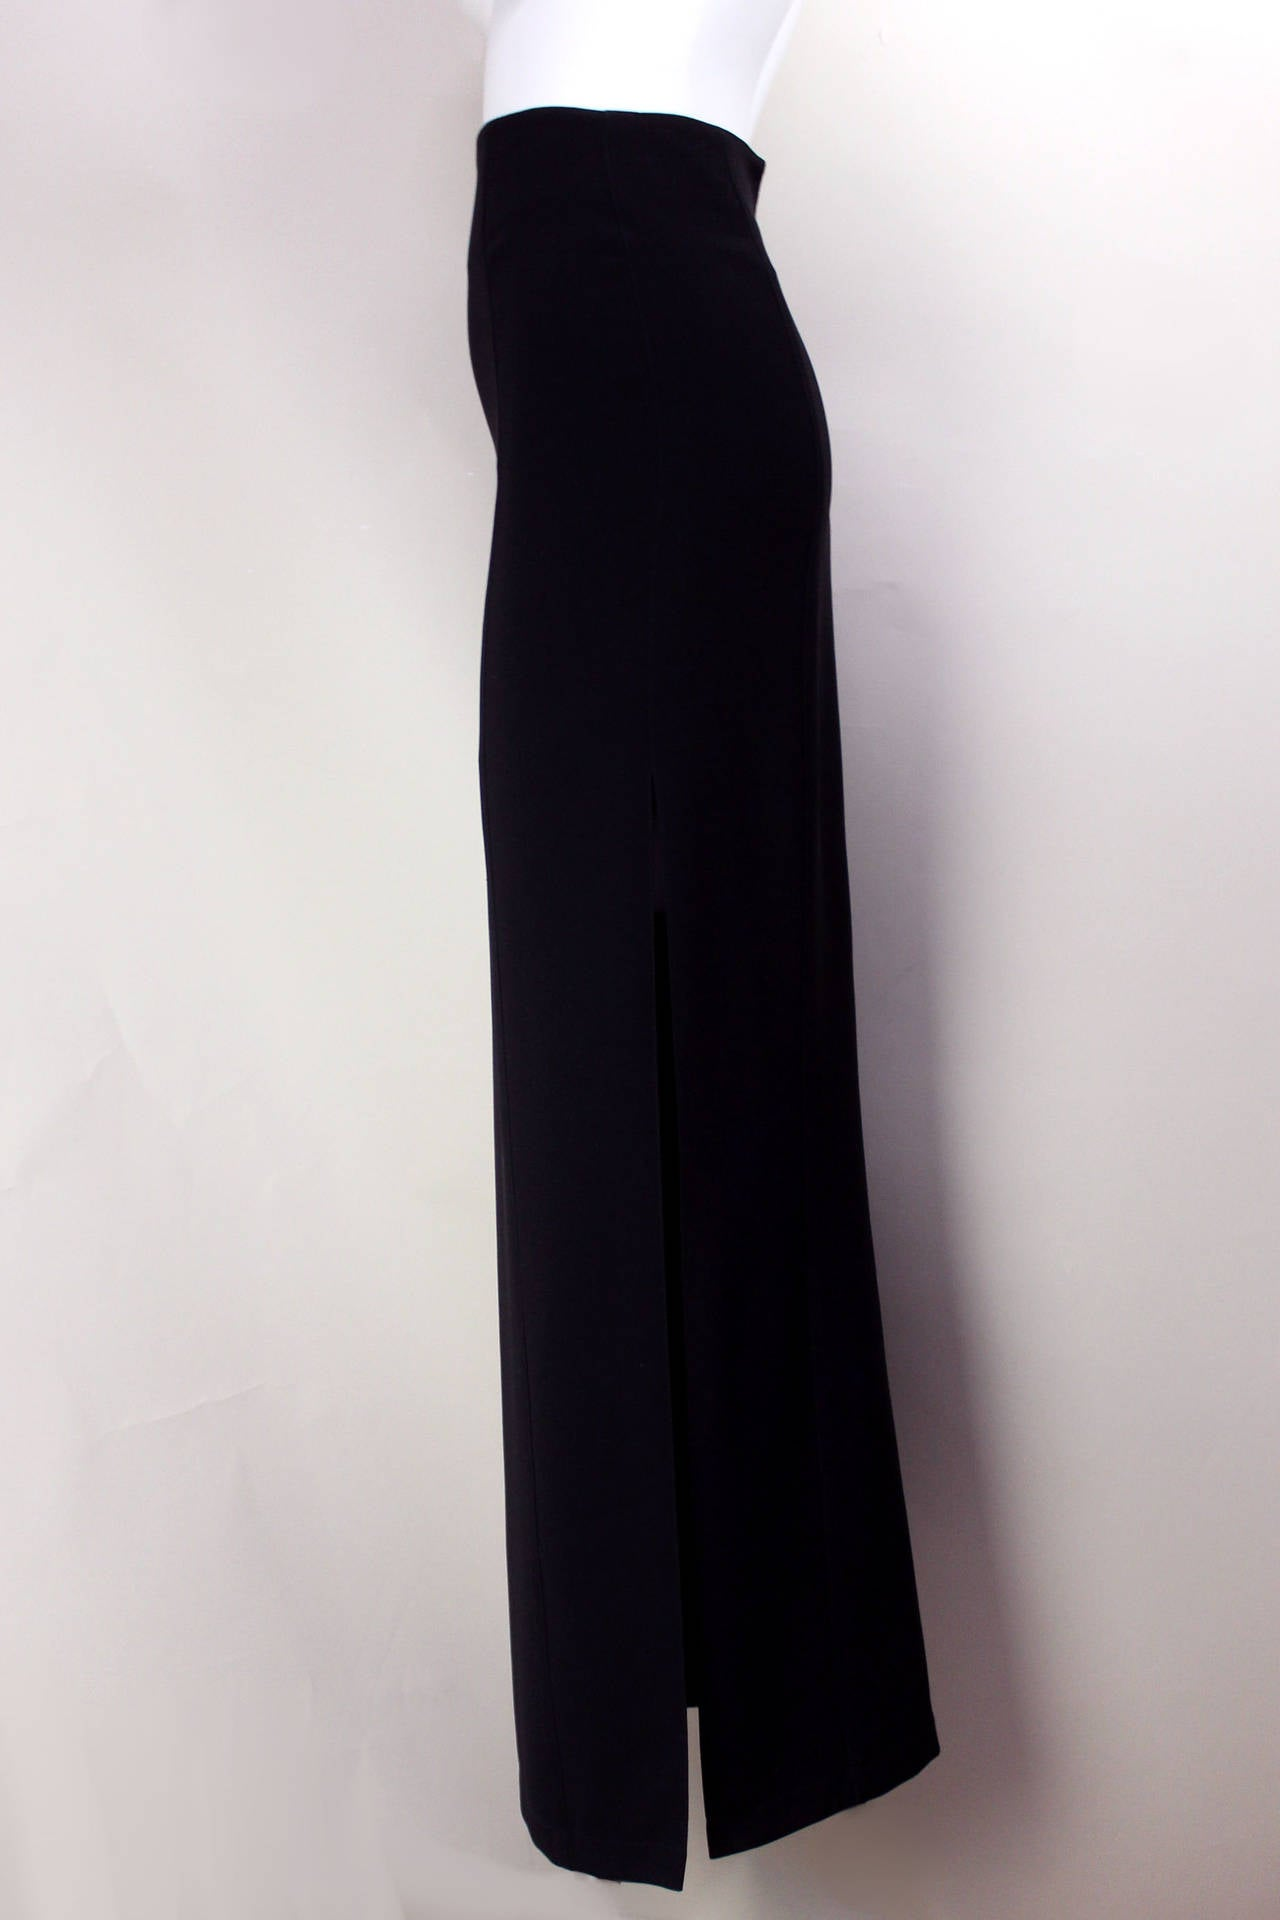 This is the ultimate pencil skirt! It is perfectly proportioned, completely form-fitting from waist to ankle, and features a sexy side slit up to the thigh.